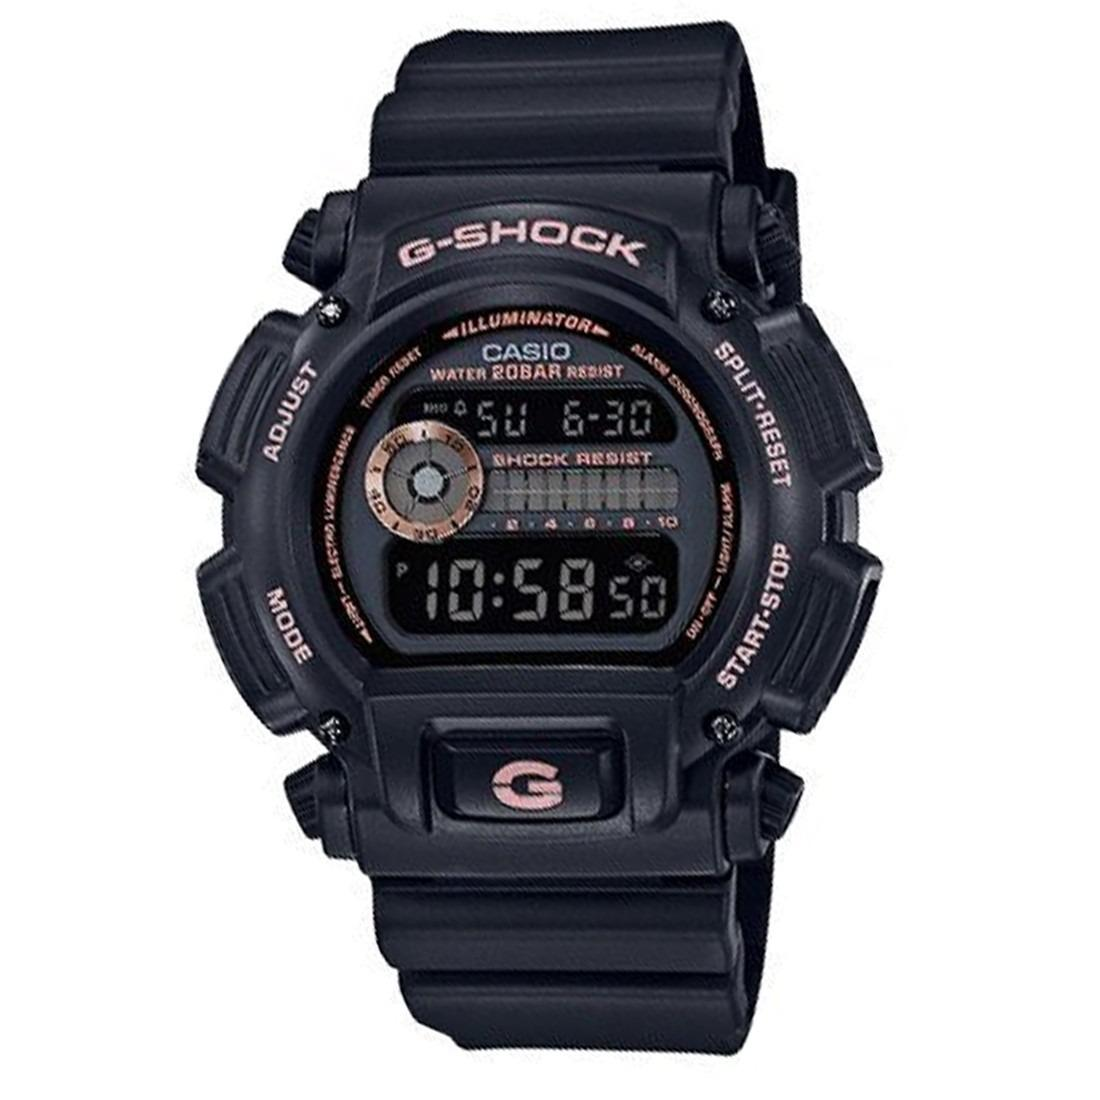 Buy Casio G Shock Dw 9052Gbx 1A4 Standard Digital Men S Watch Casio G Shock Cheap